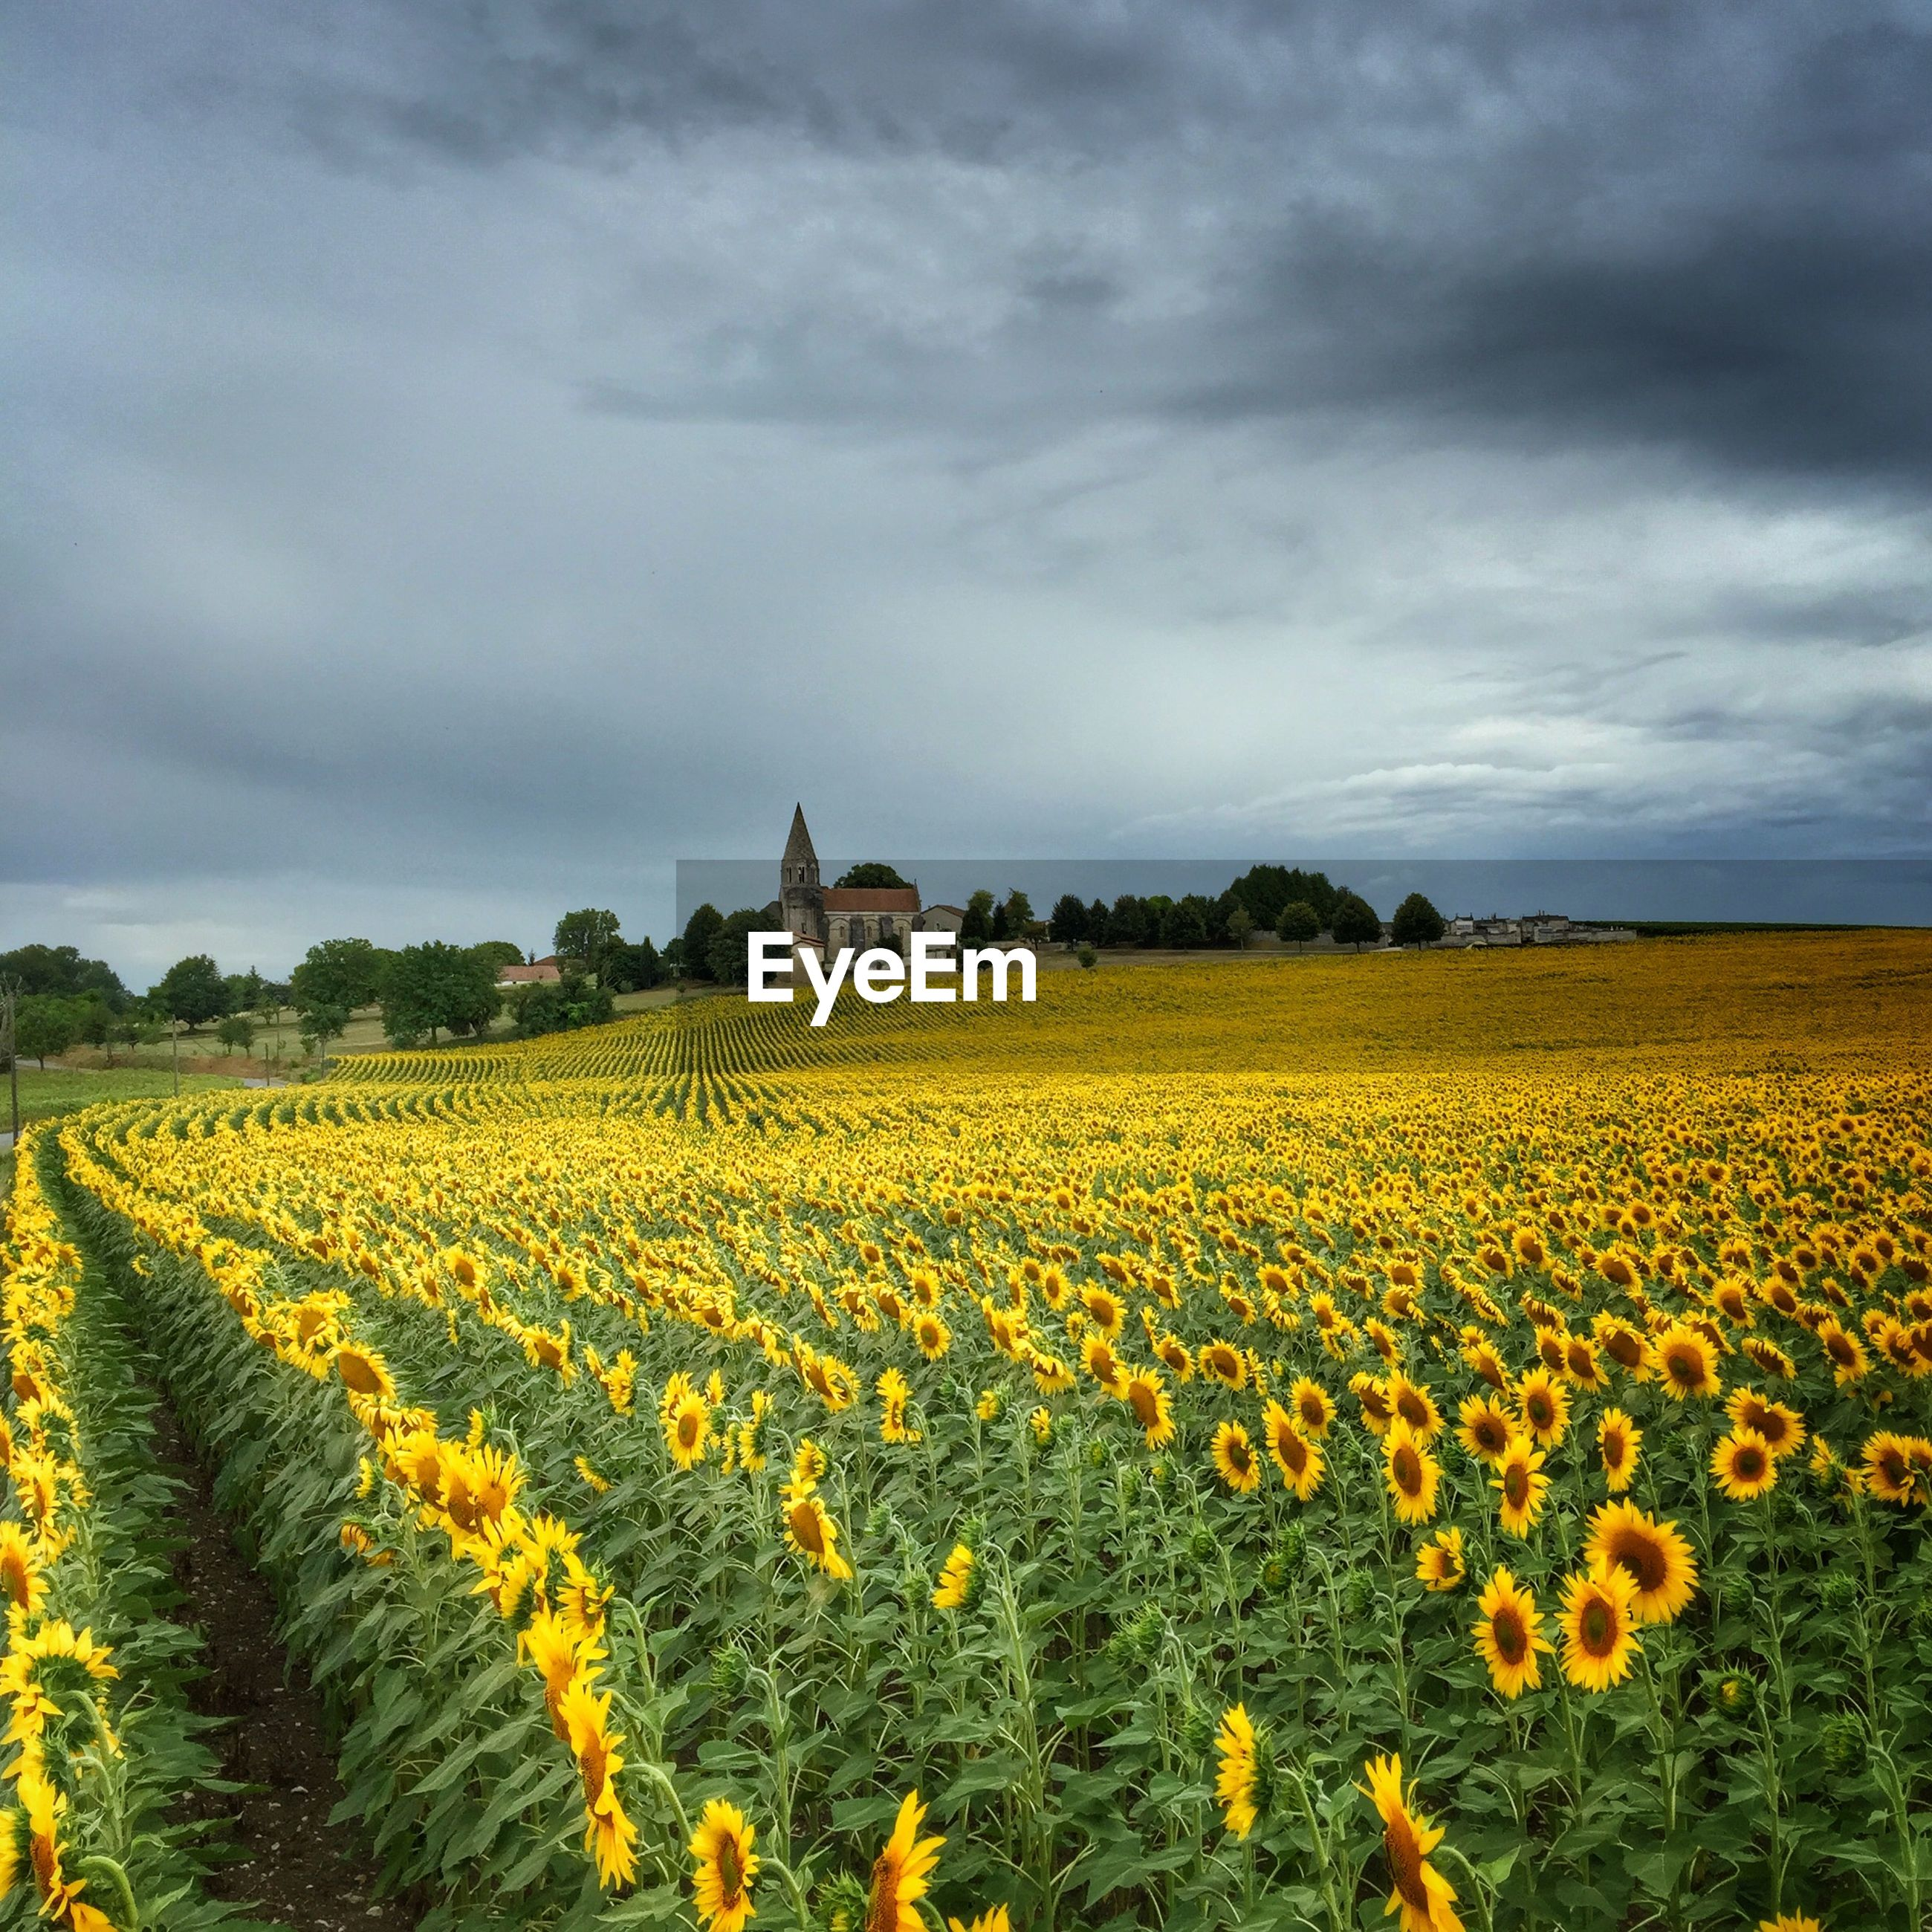 Scenic view of sunflower farm against cloudy sky